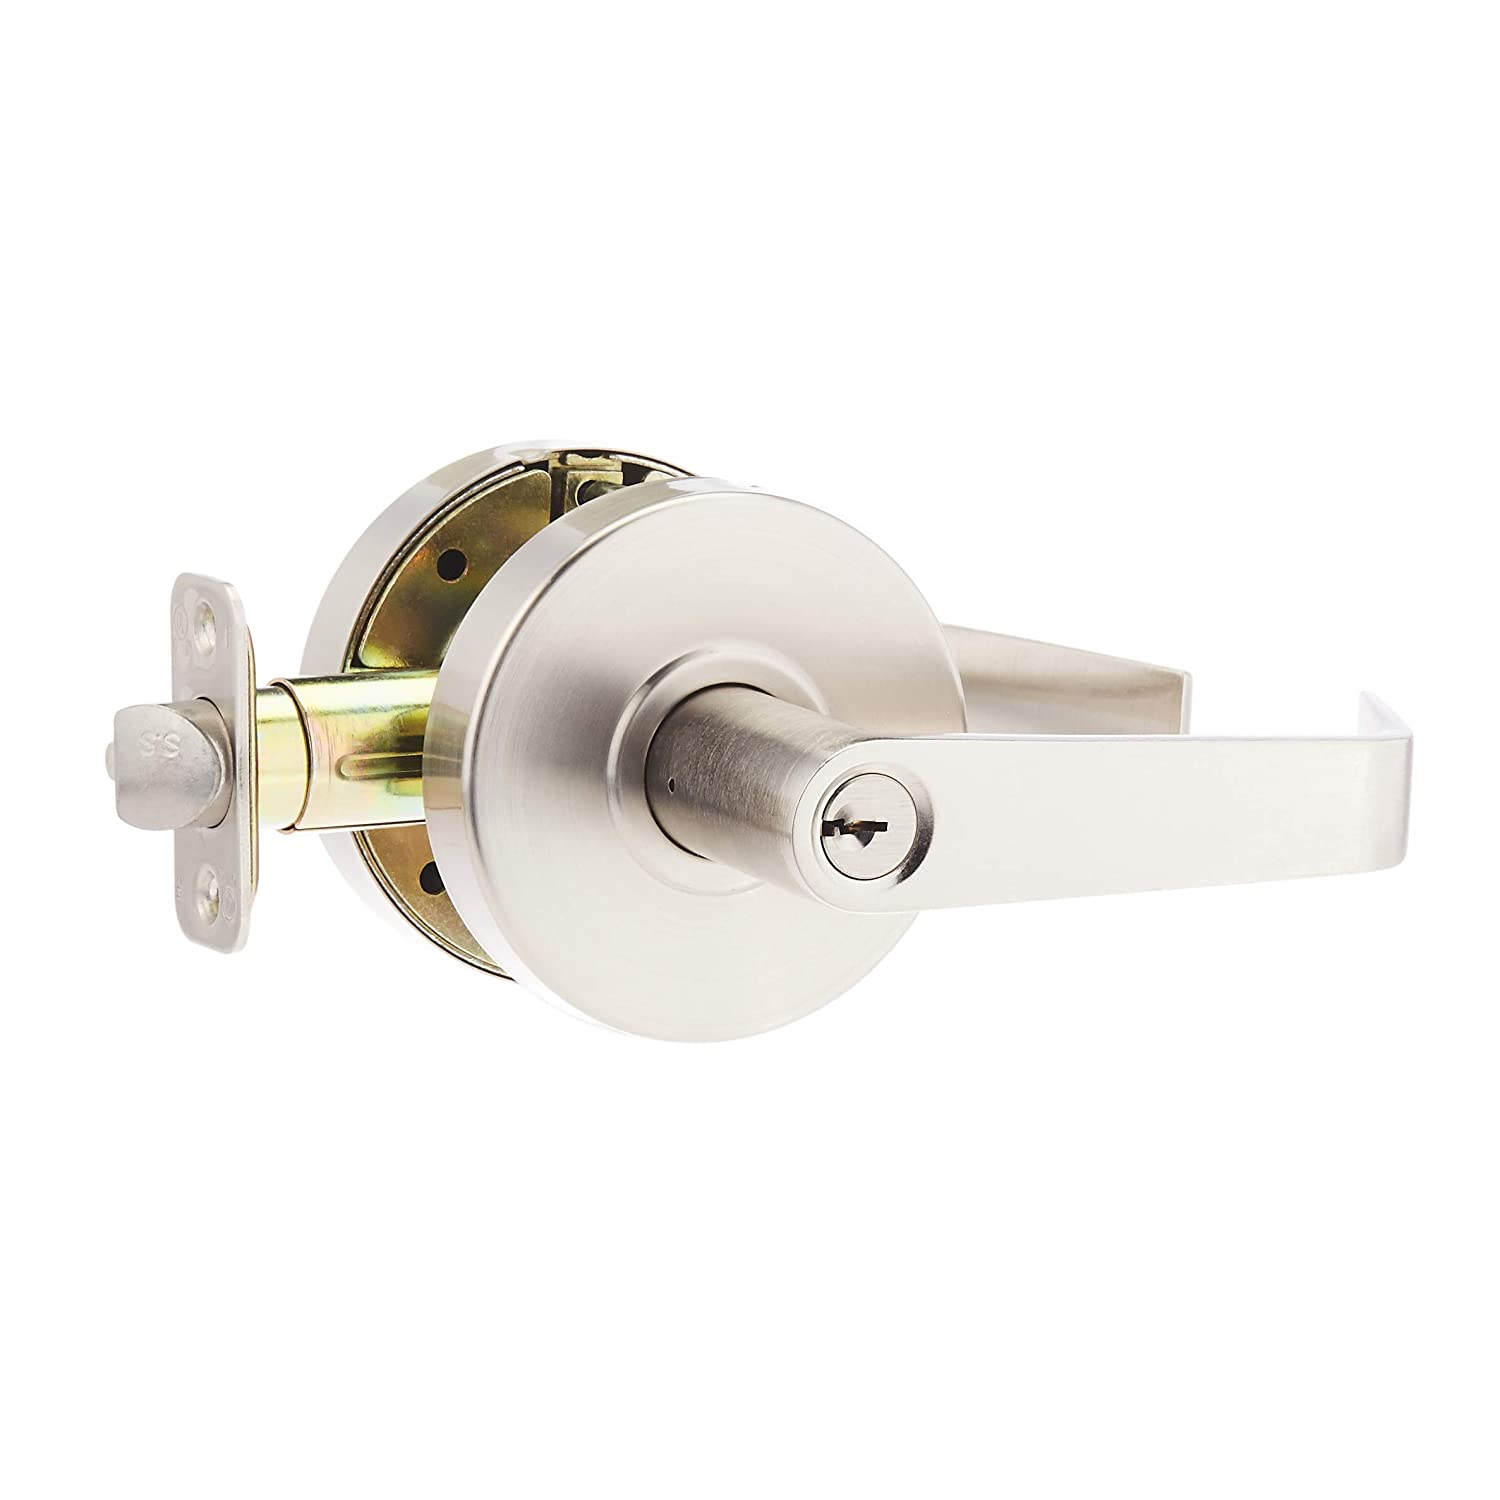 AmazonCommercial Grade 2 Commercial Duty Door Lever-Entry Lockset, Satin Nickel Finish, 2-Pack